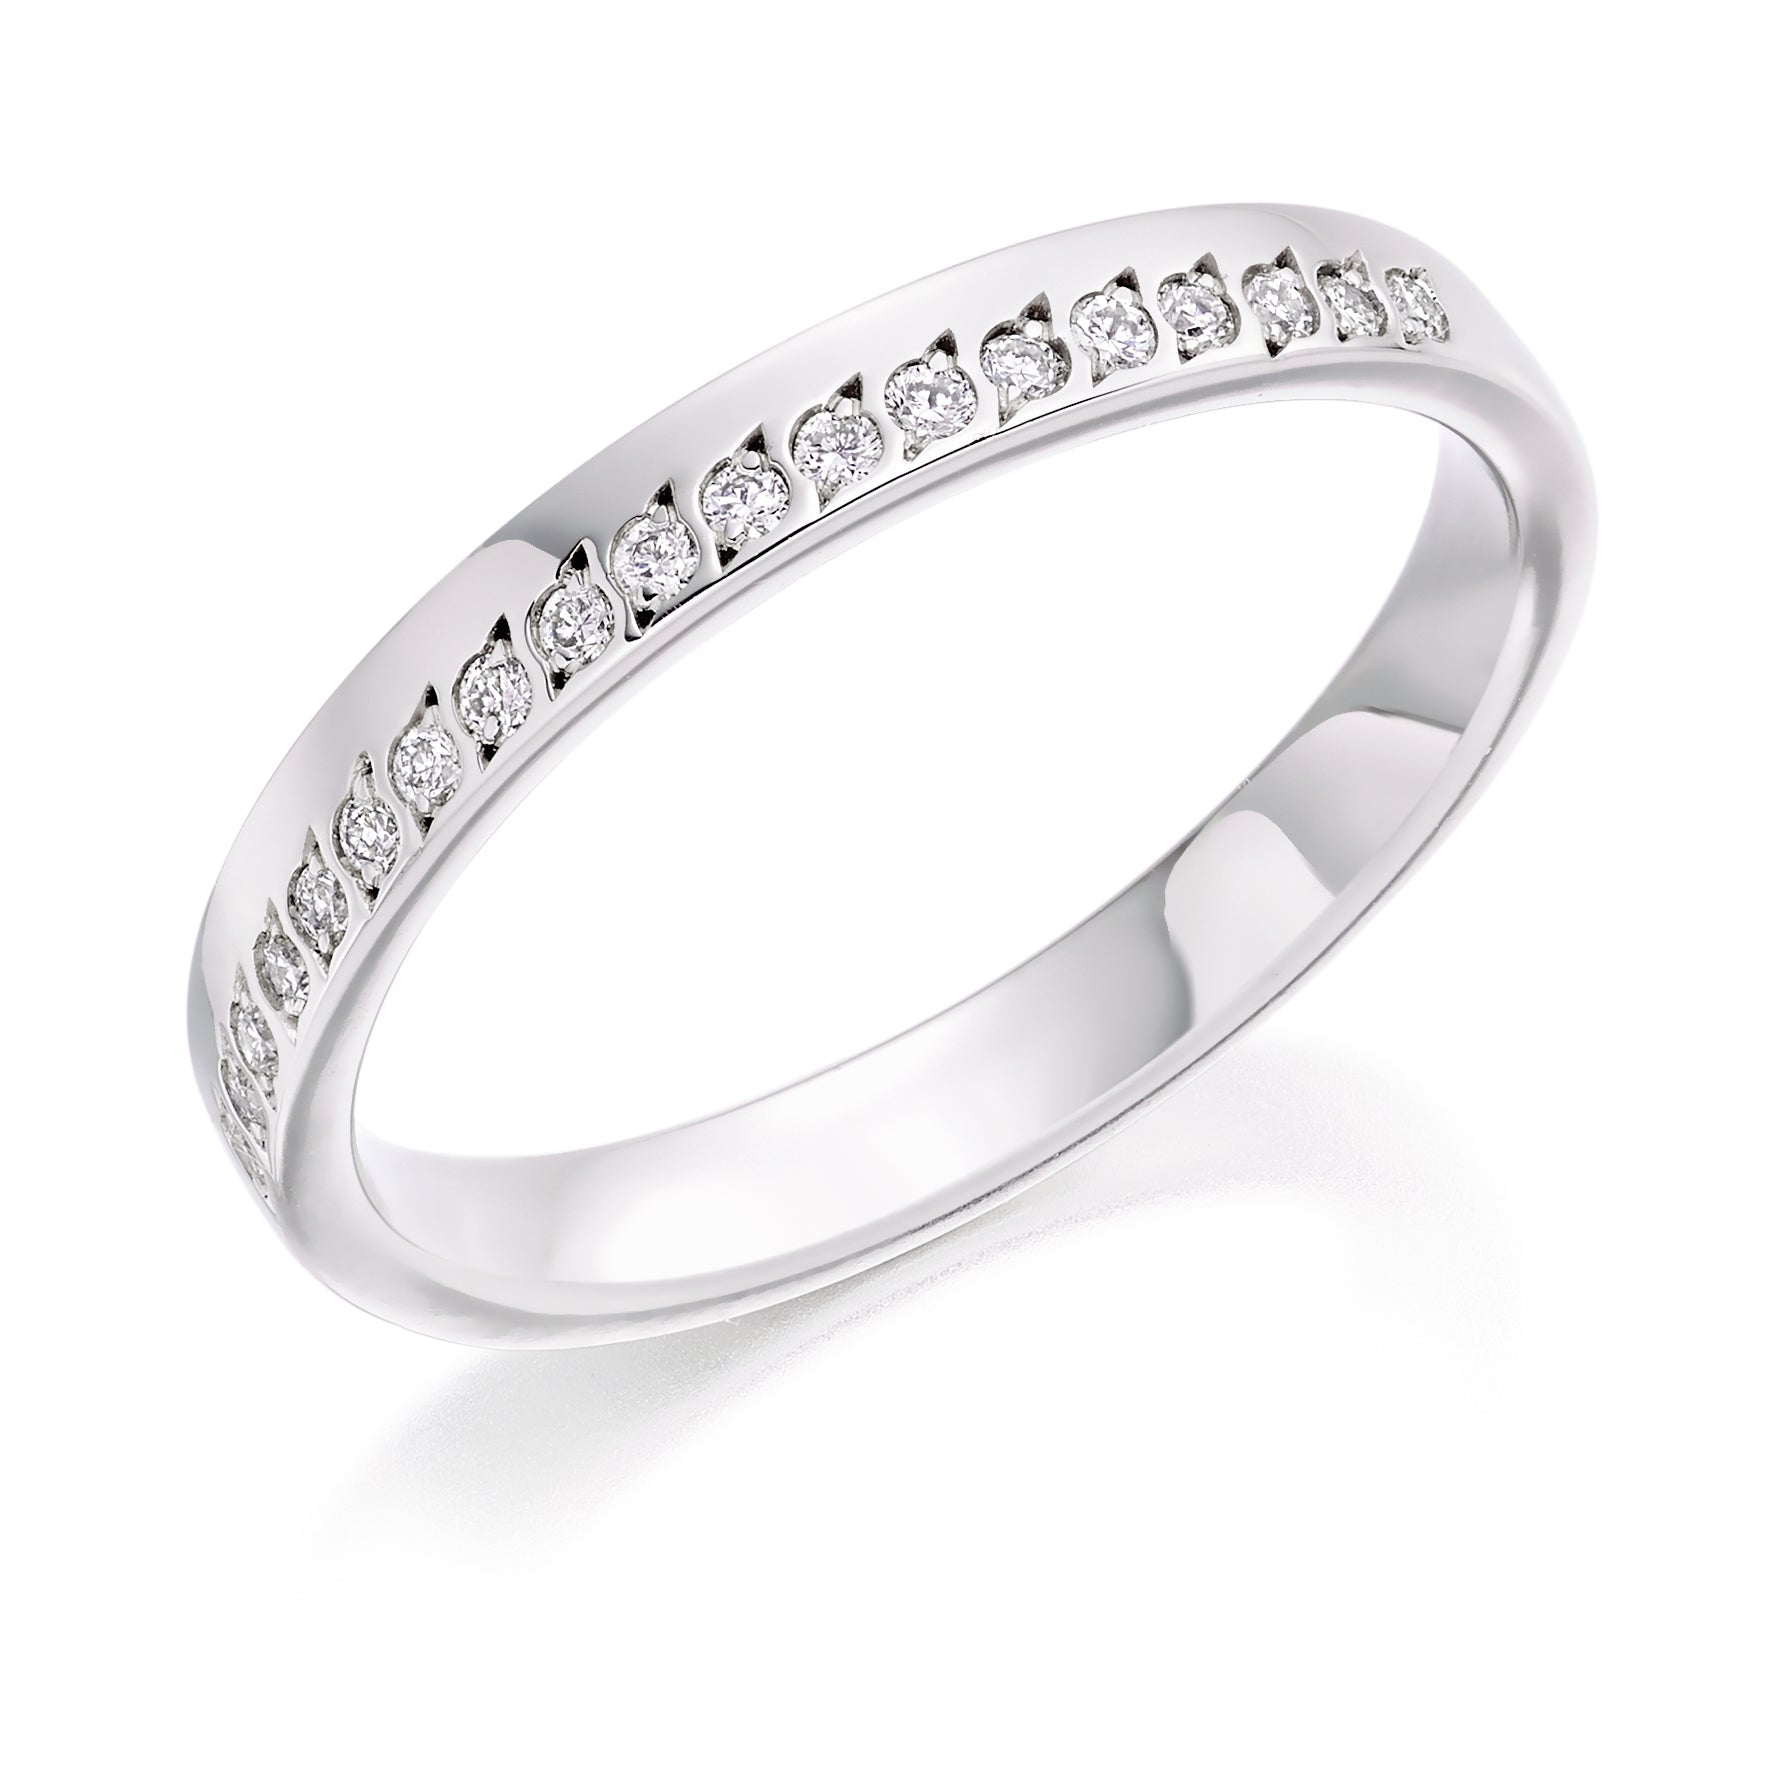 0.15ct Round Brilliant Cut Diamonds Offset Wedding Ring - (Home Try-On)